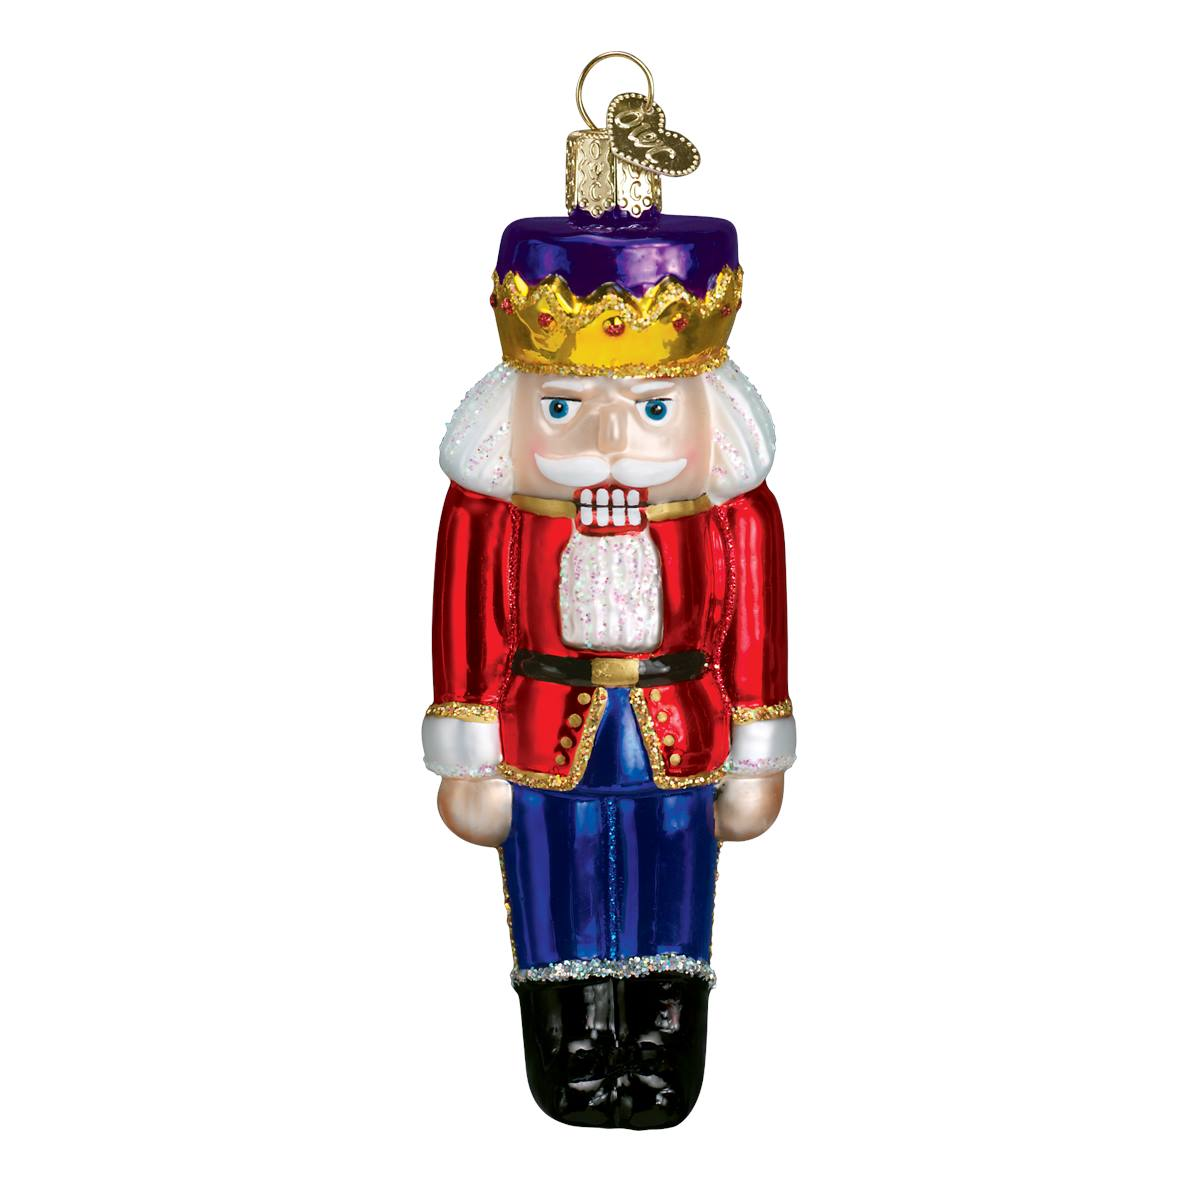 nutcracker prince ornament - Nutcracker Christmas Ornaments